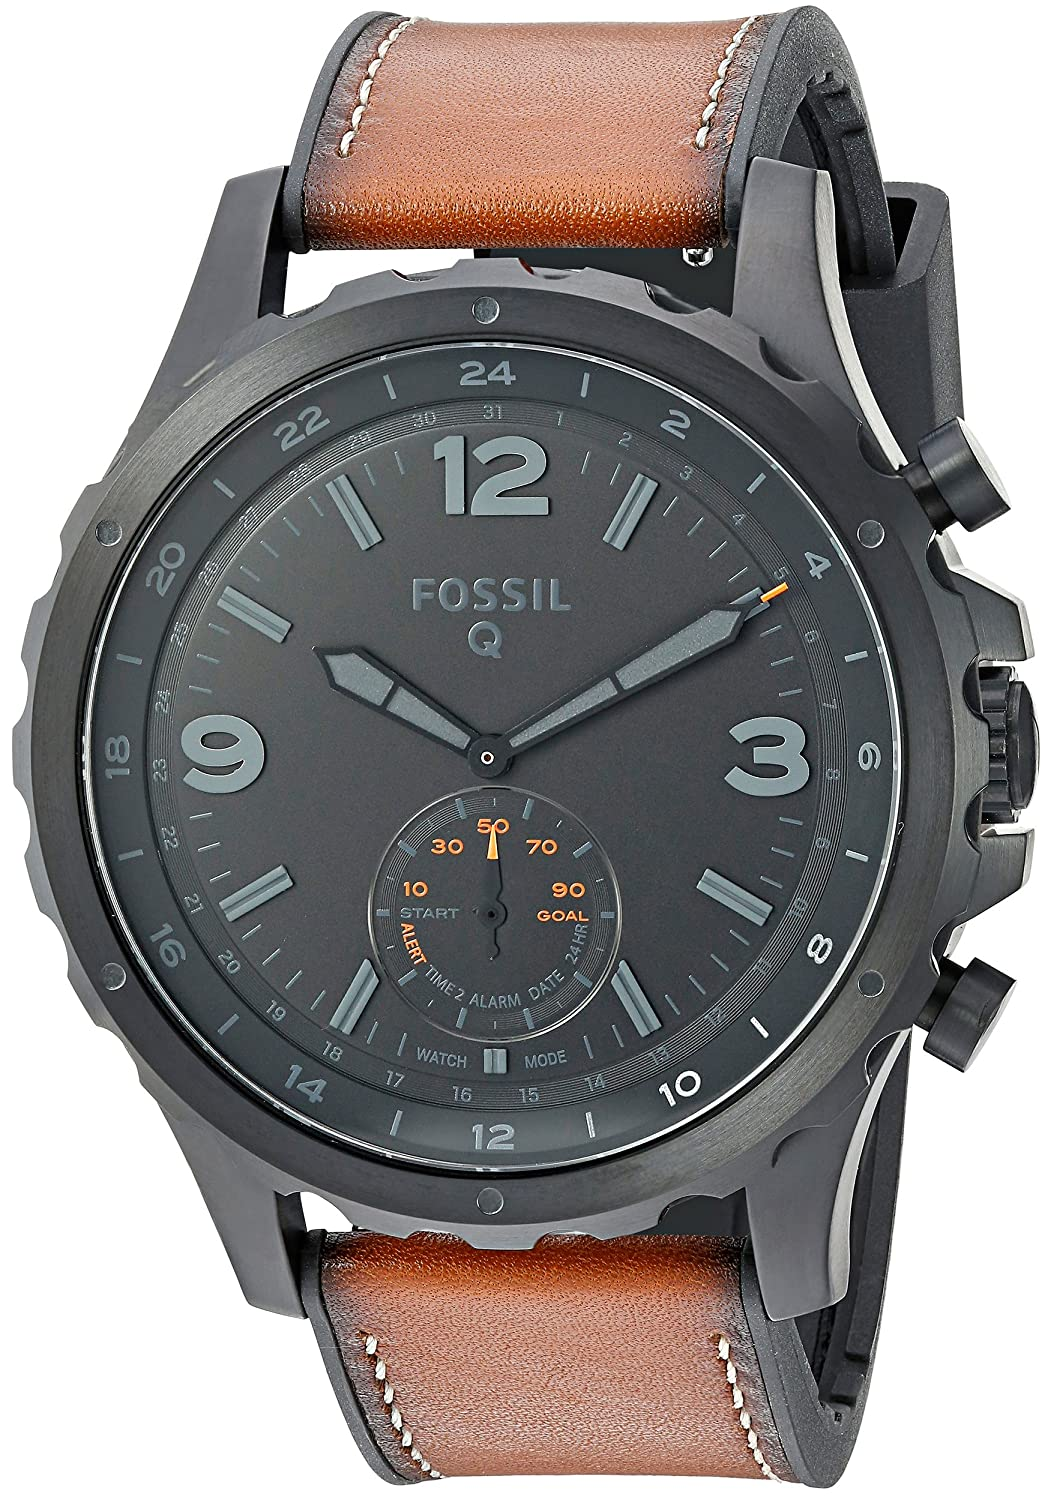 e461d731bb5a Amazon.com  Fossil Q Men s Nate Stainless Steel and Leather Hybrid  Smartwatch